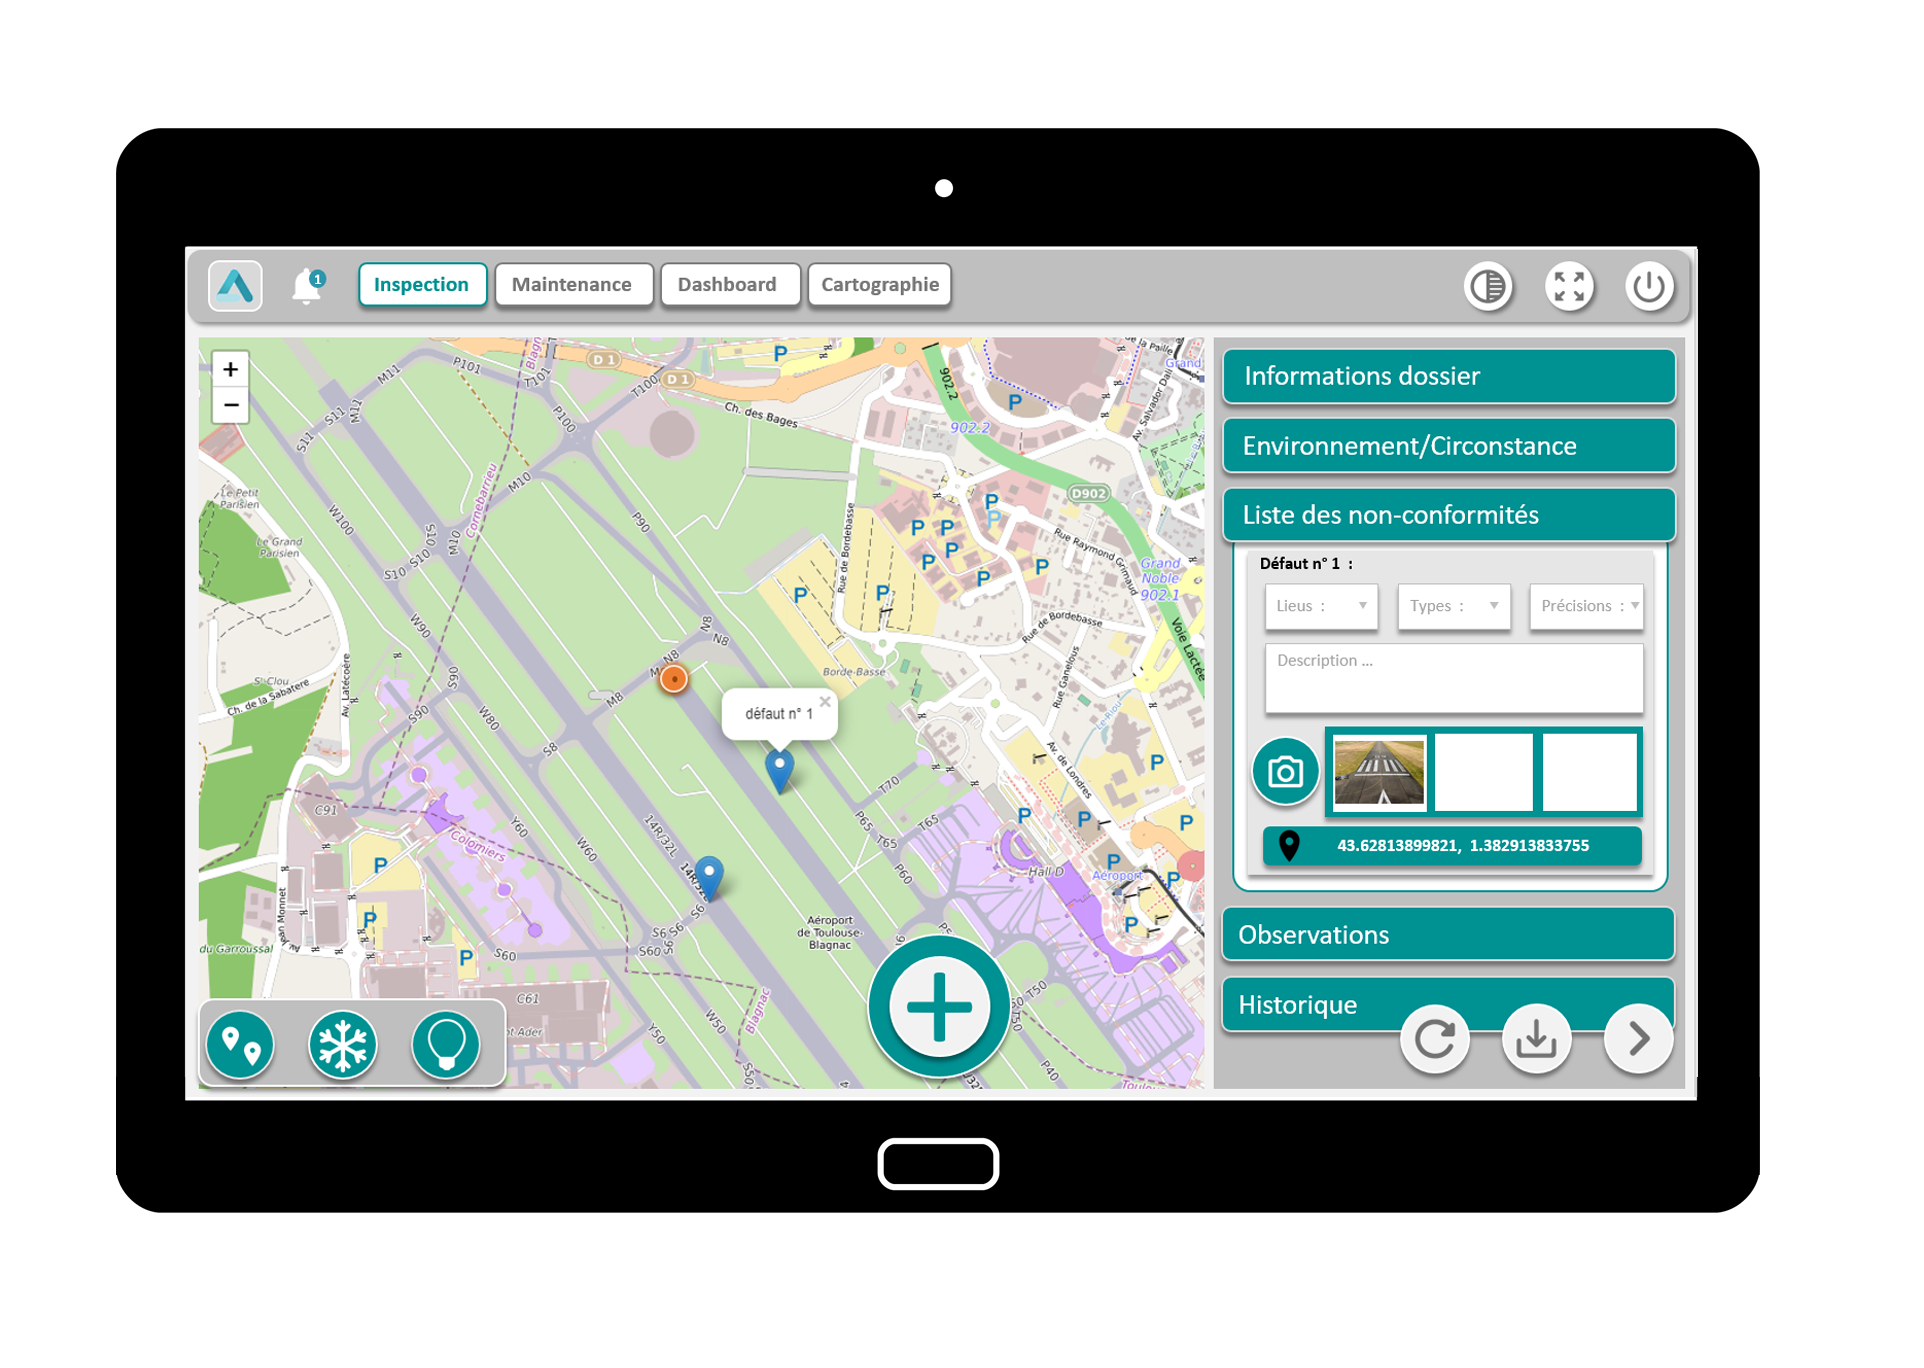 airport-infra-inspection-app-for-airports.png